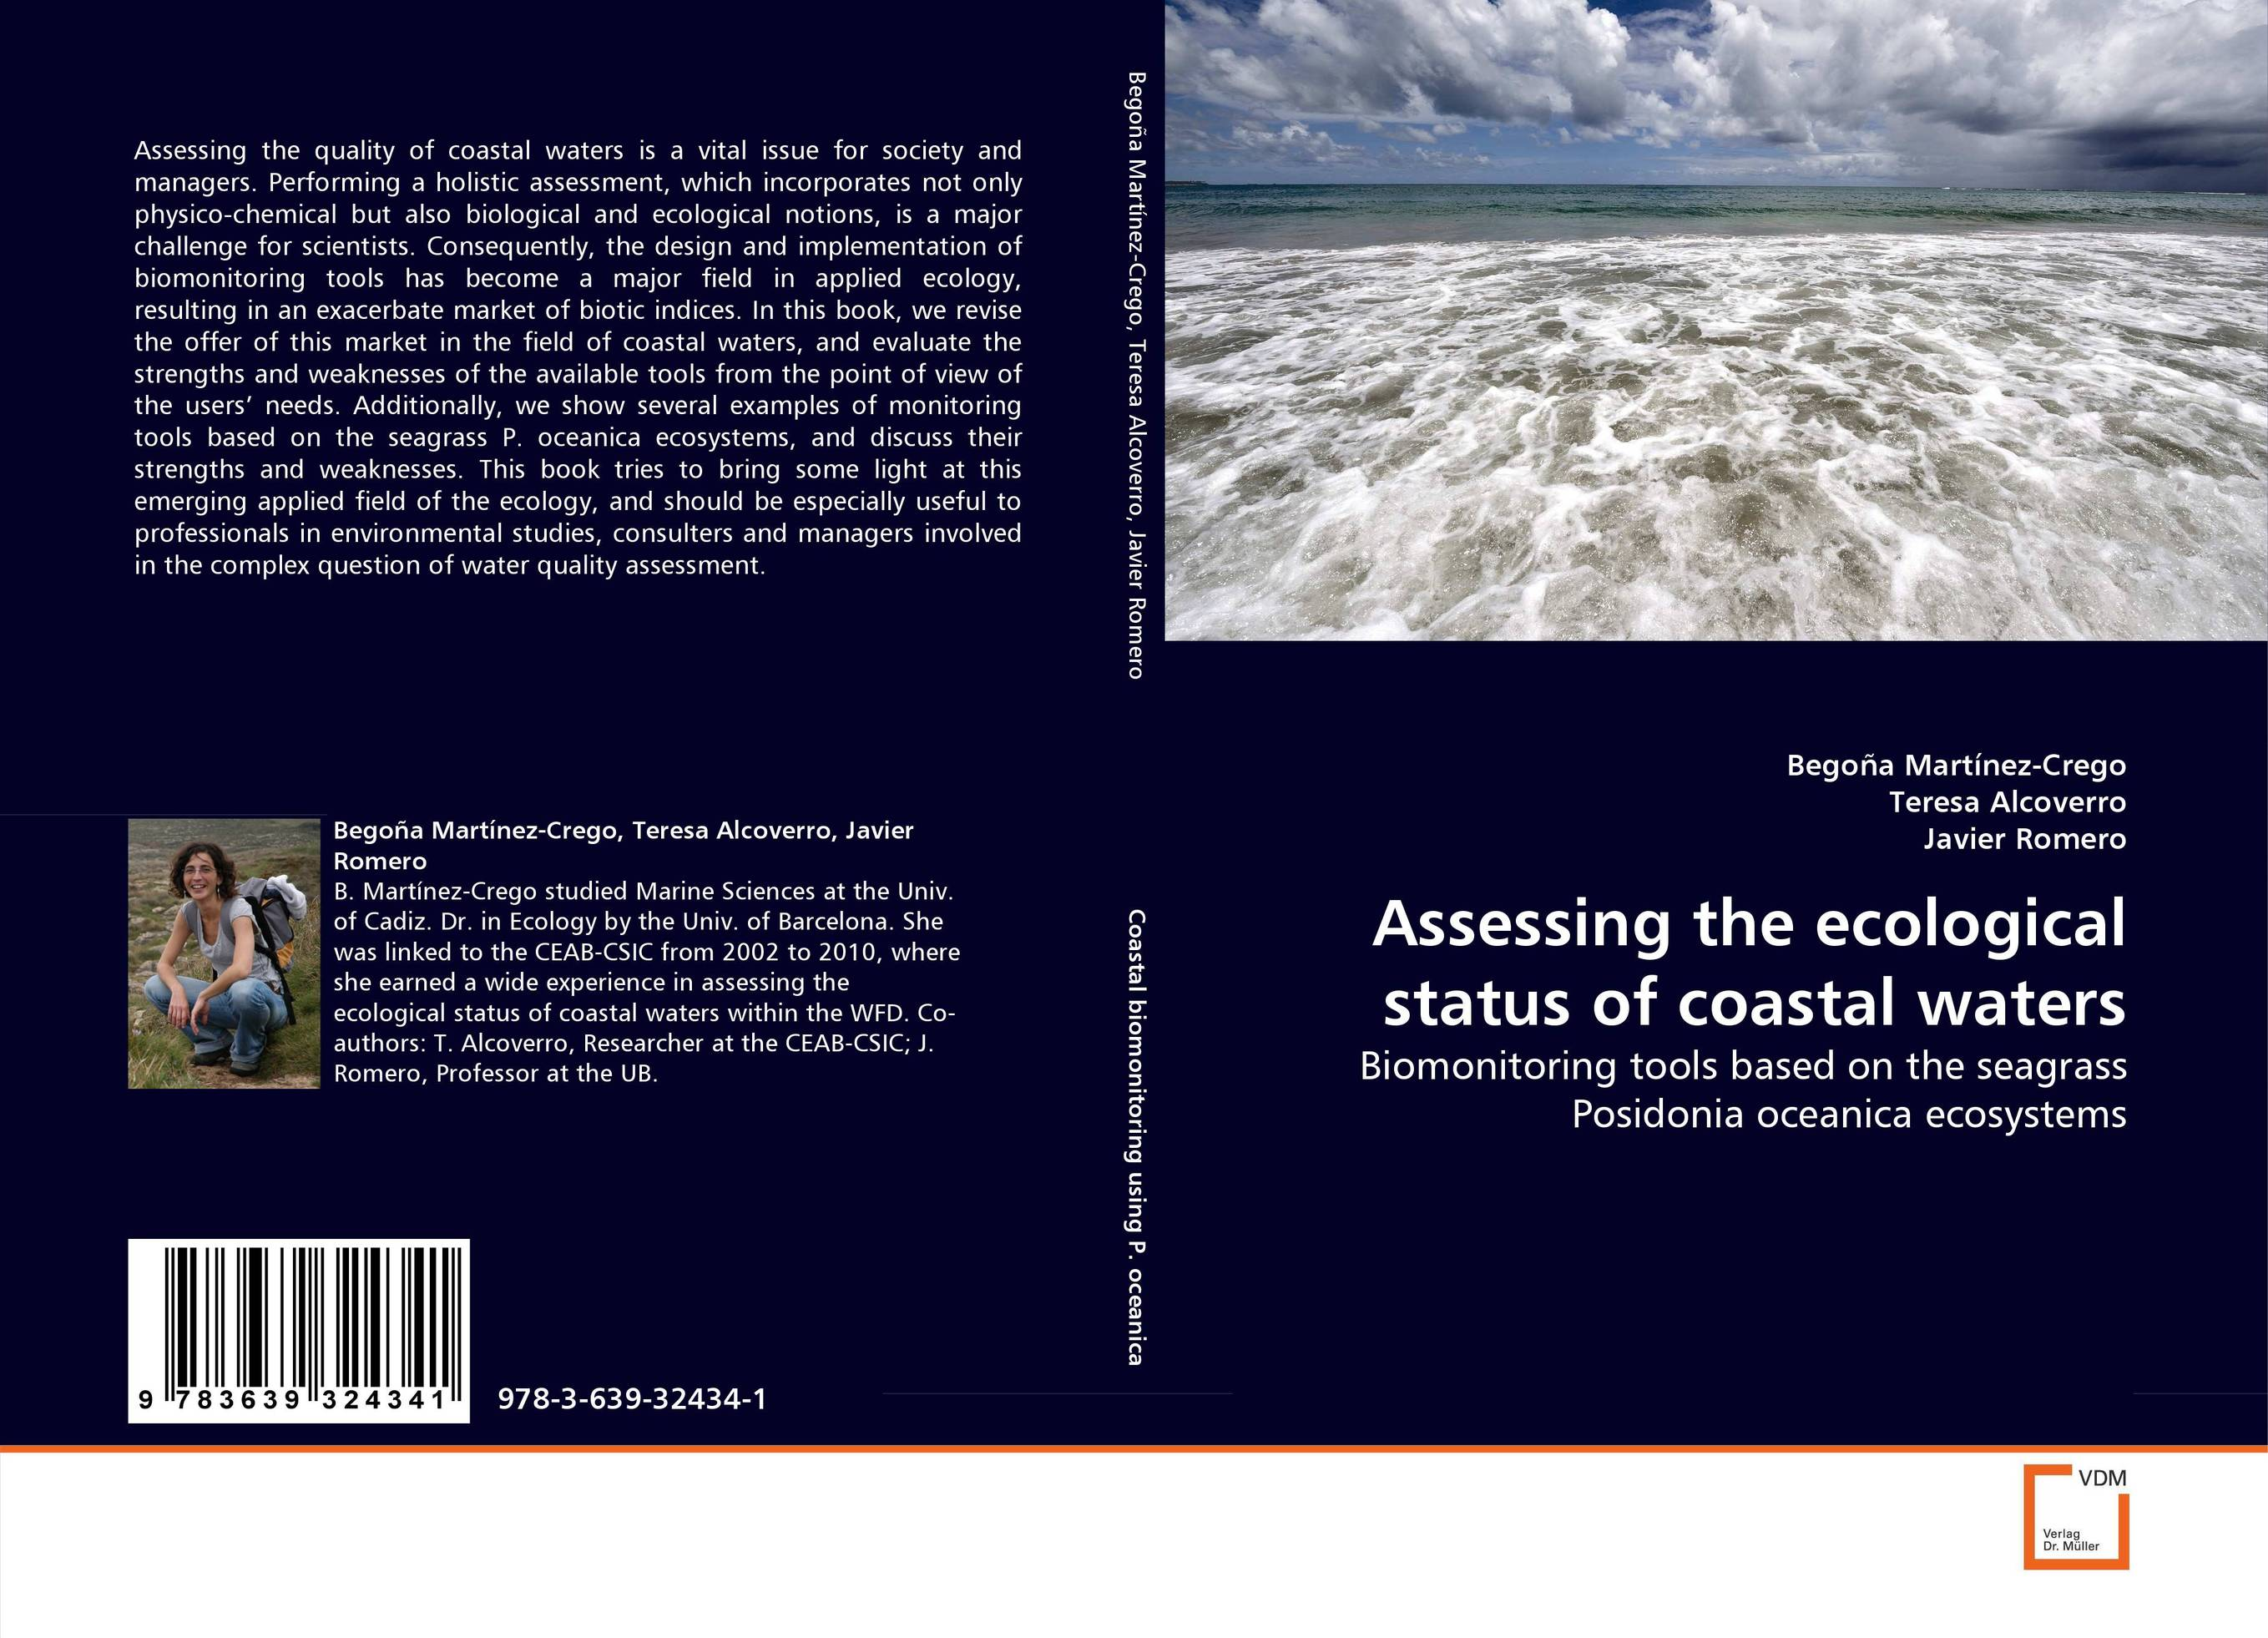 Assessing the ecological status of coastal waters